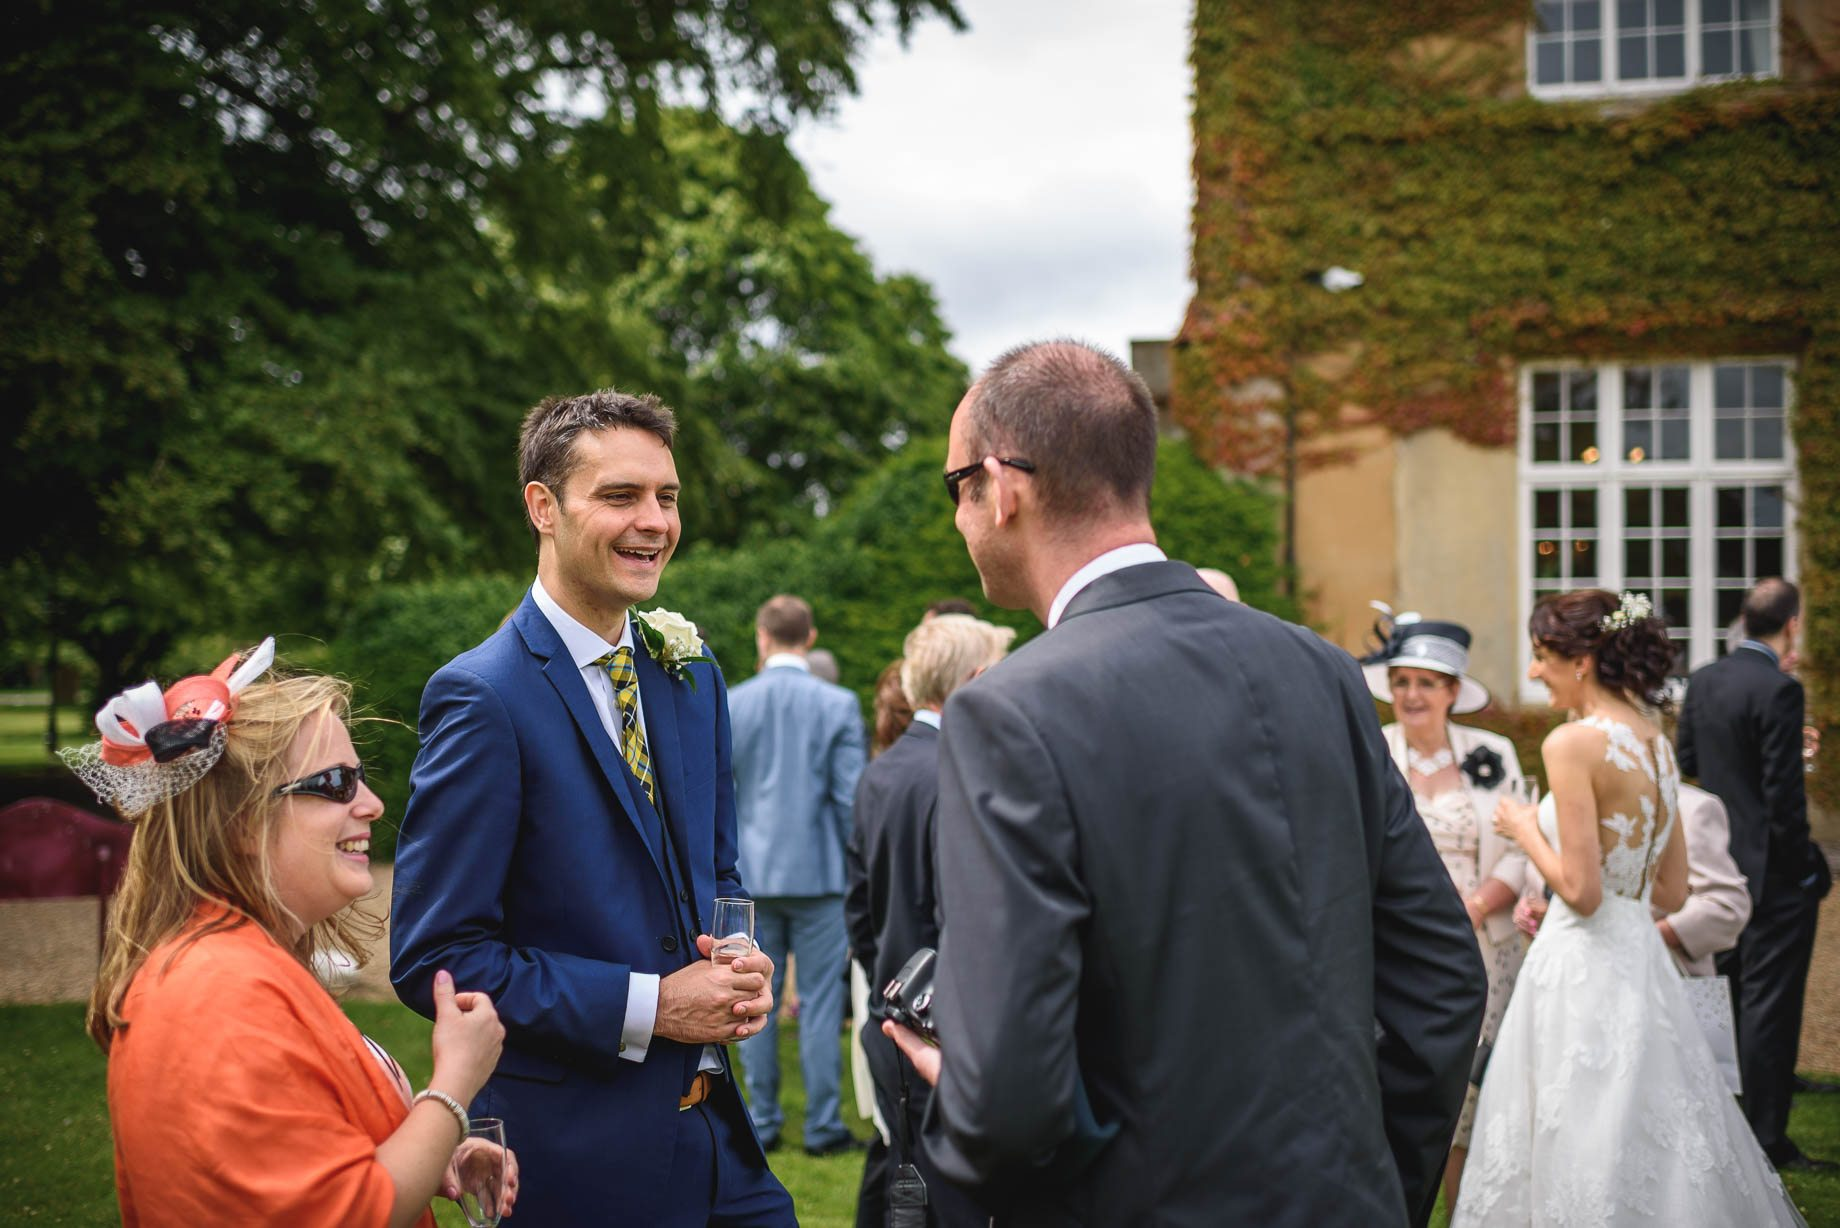 Hertfordshire wedding photography - Sarah and Stephen by Guy Collier Photography (105 of 161)